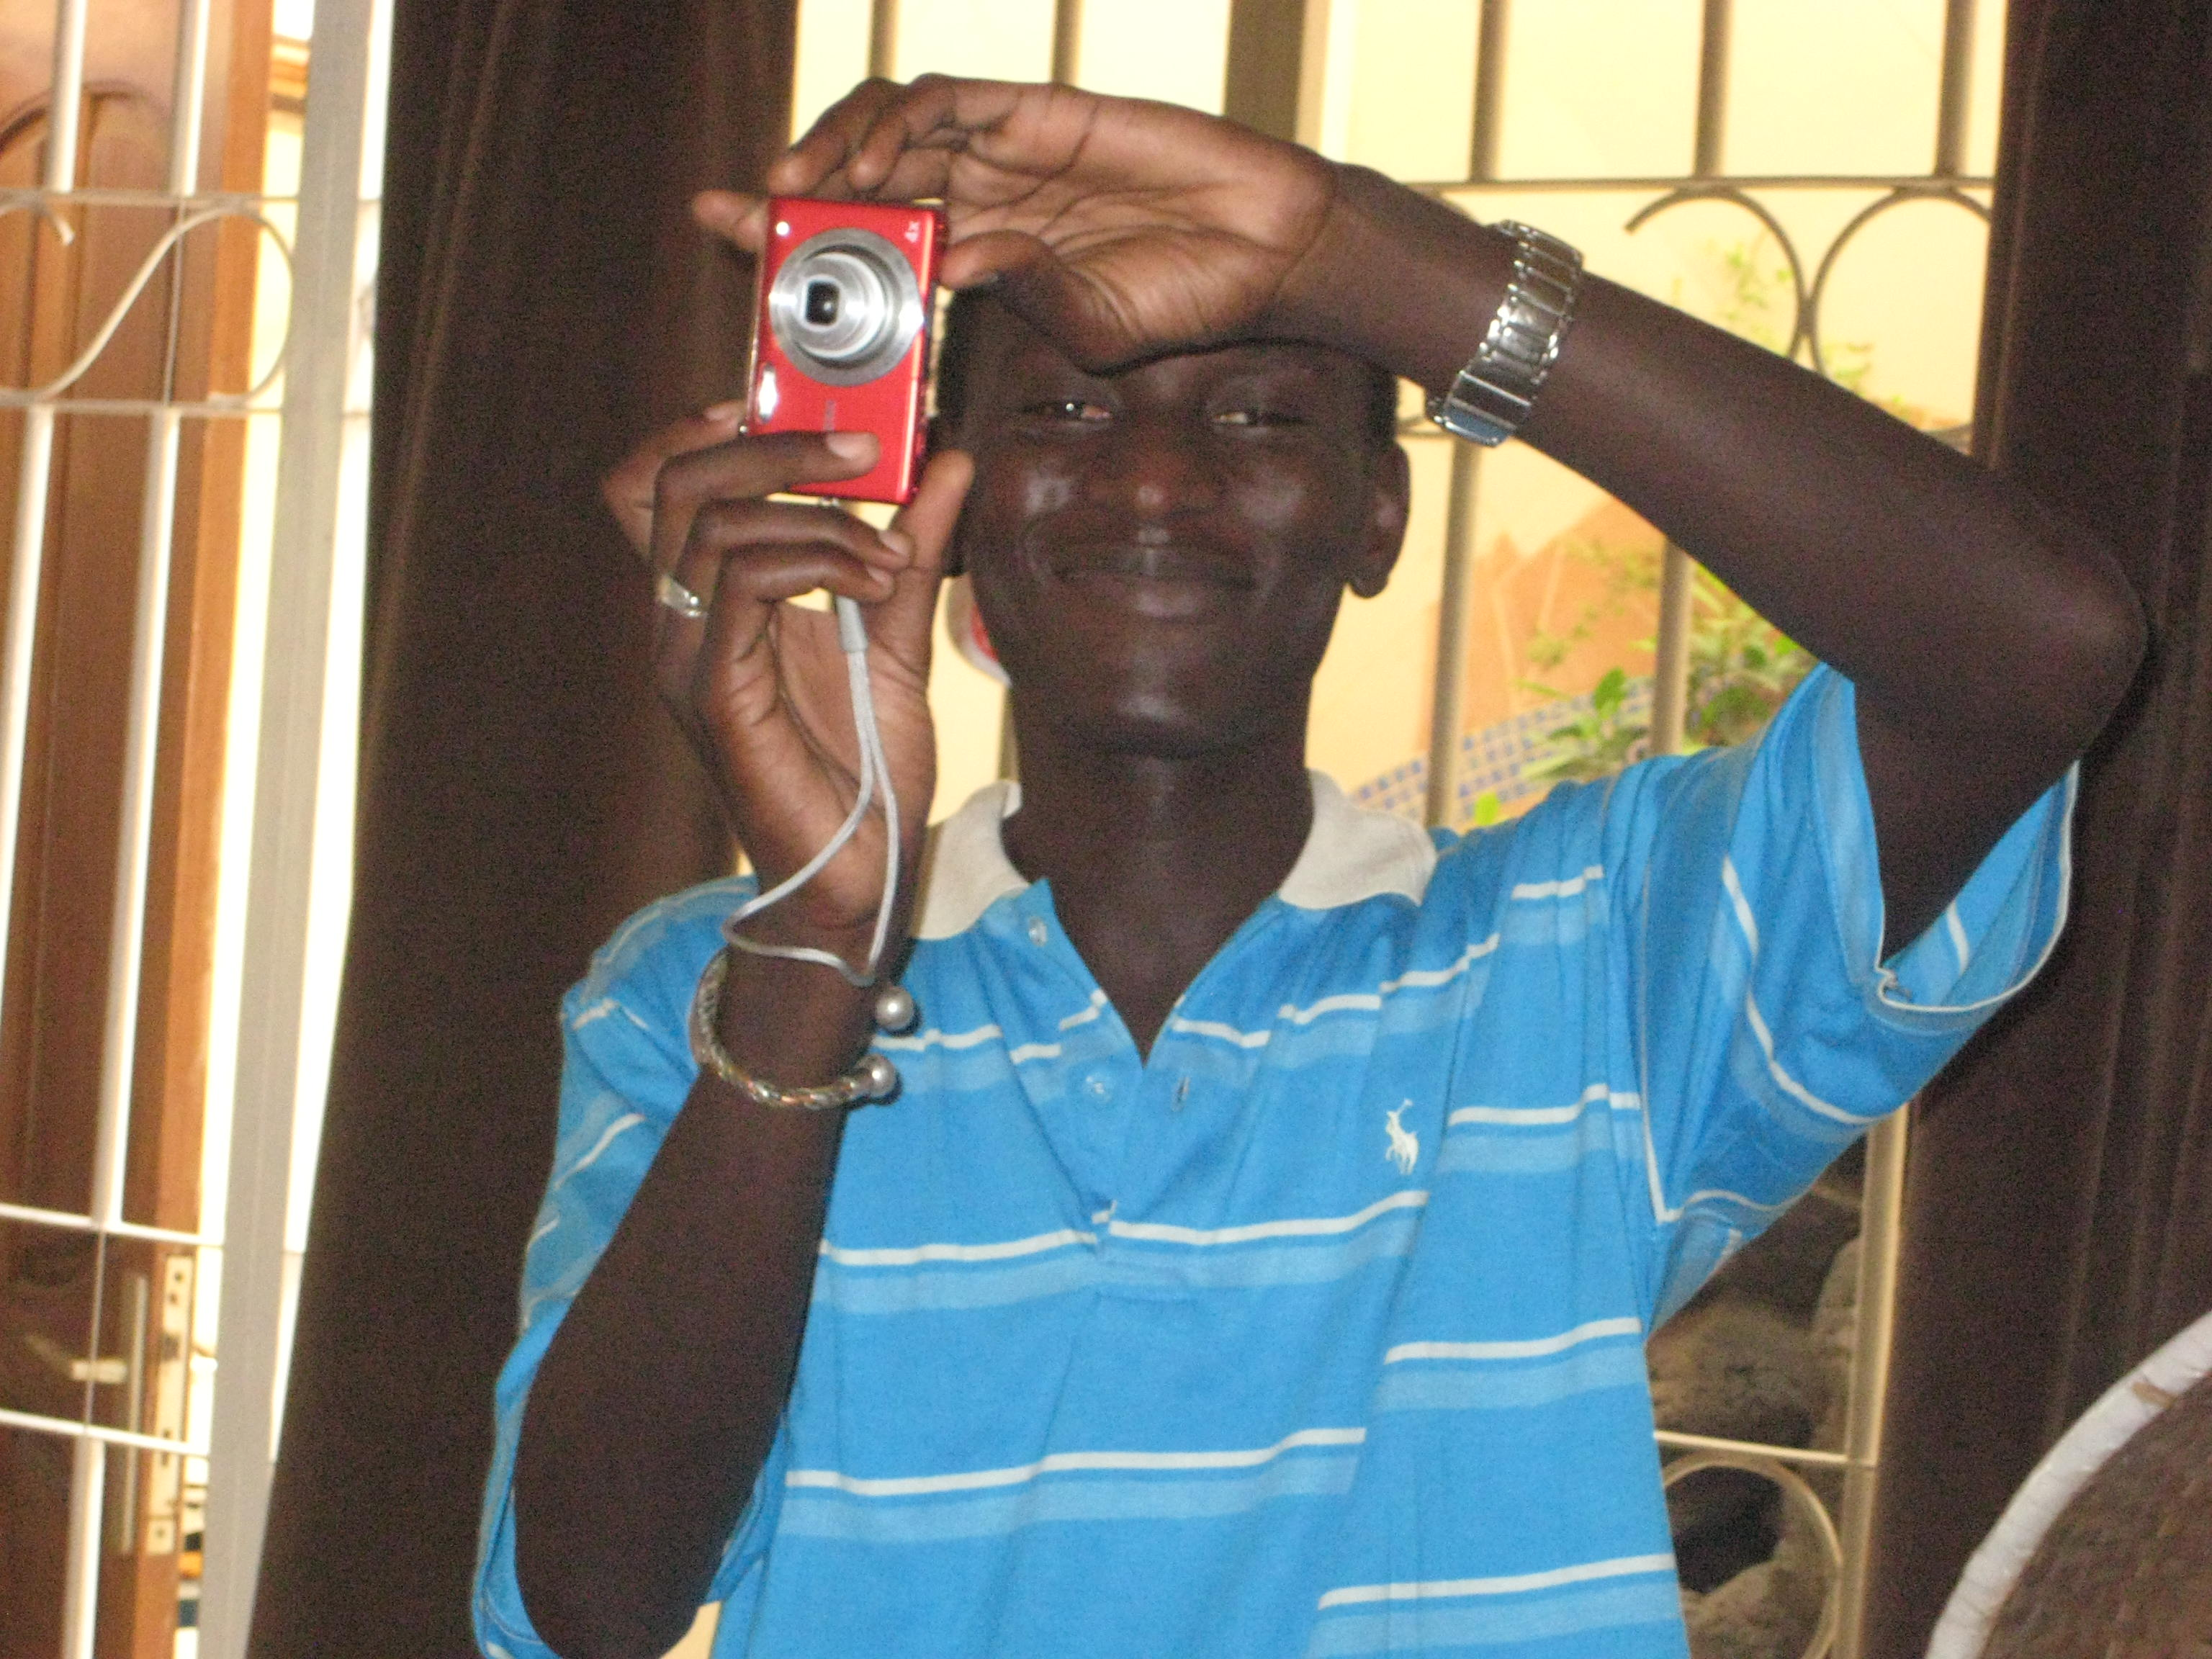 Tidiane with digital camera ... have grave concerns about the modelling agency who represent Blondeau, ...